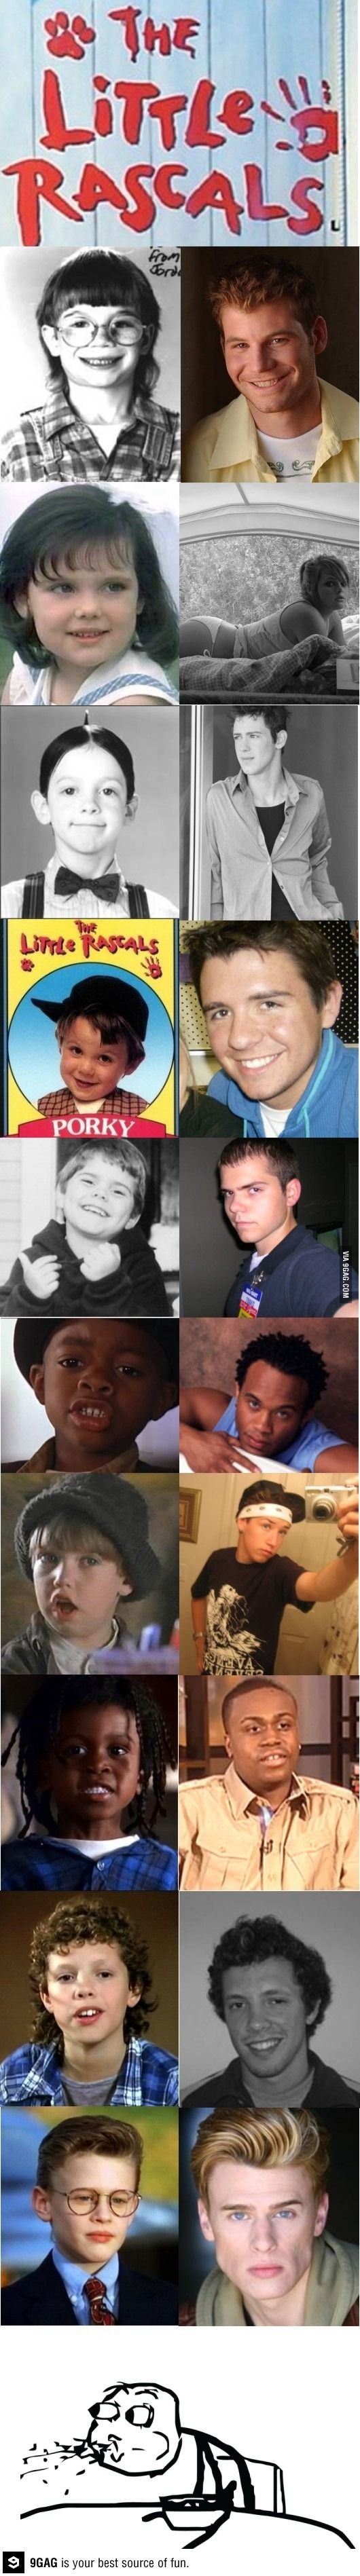 Little Rascals, then and now